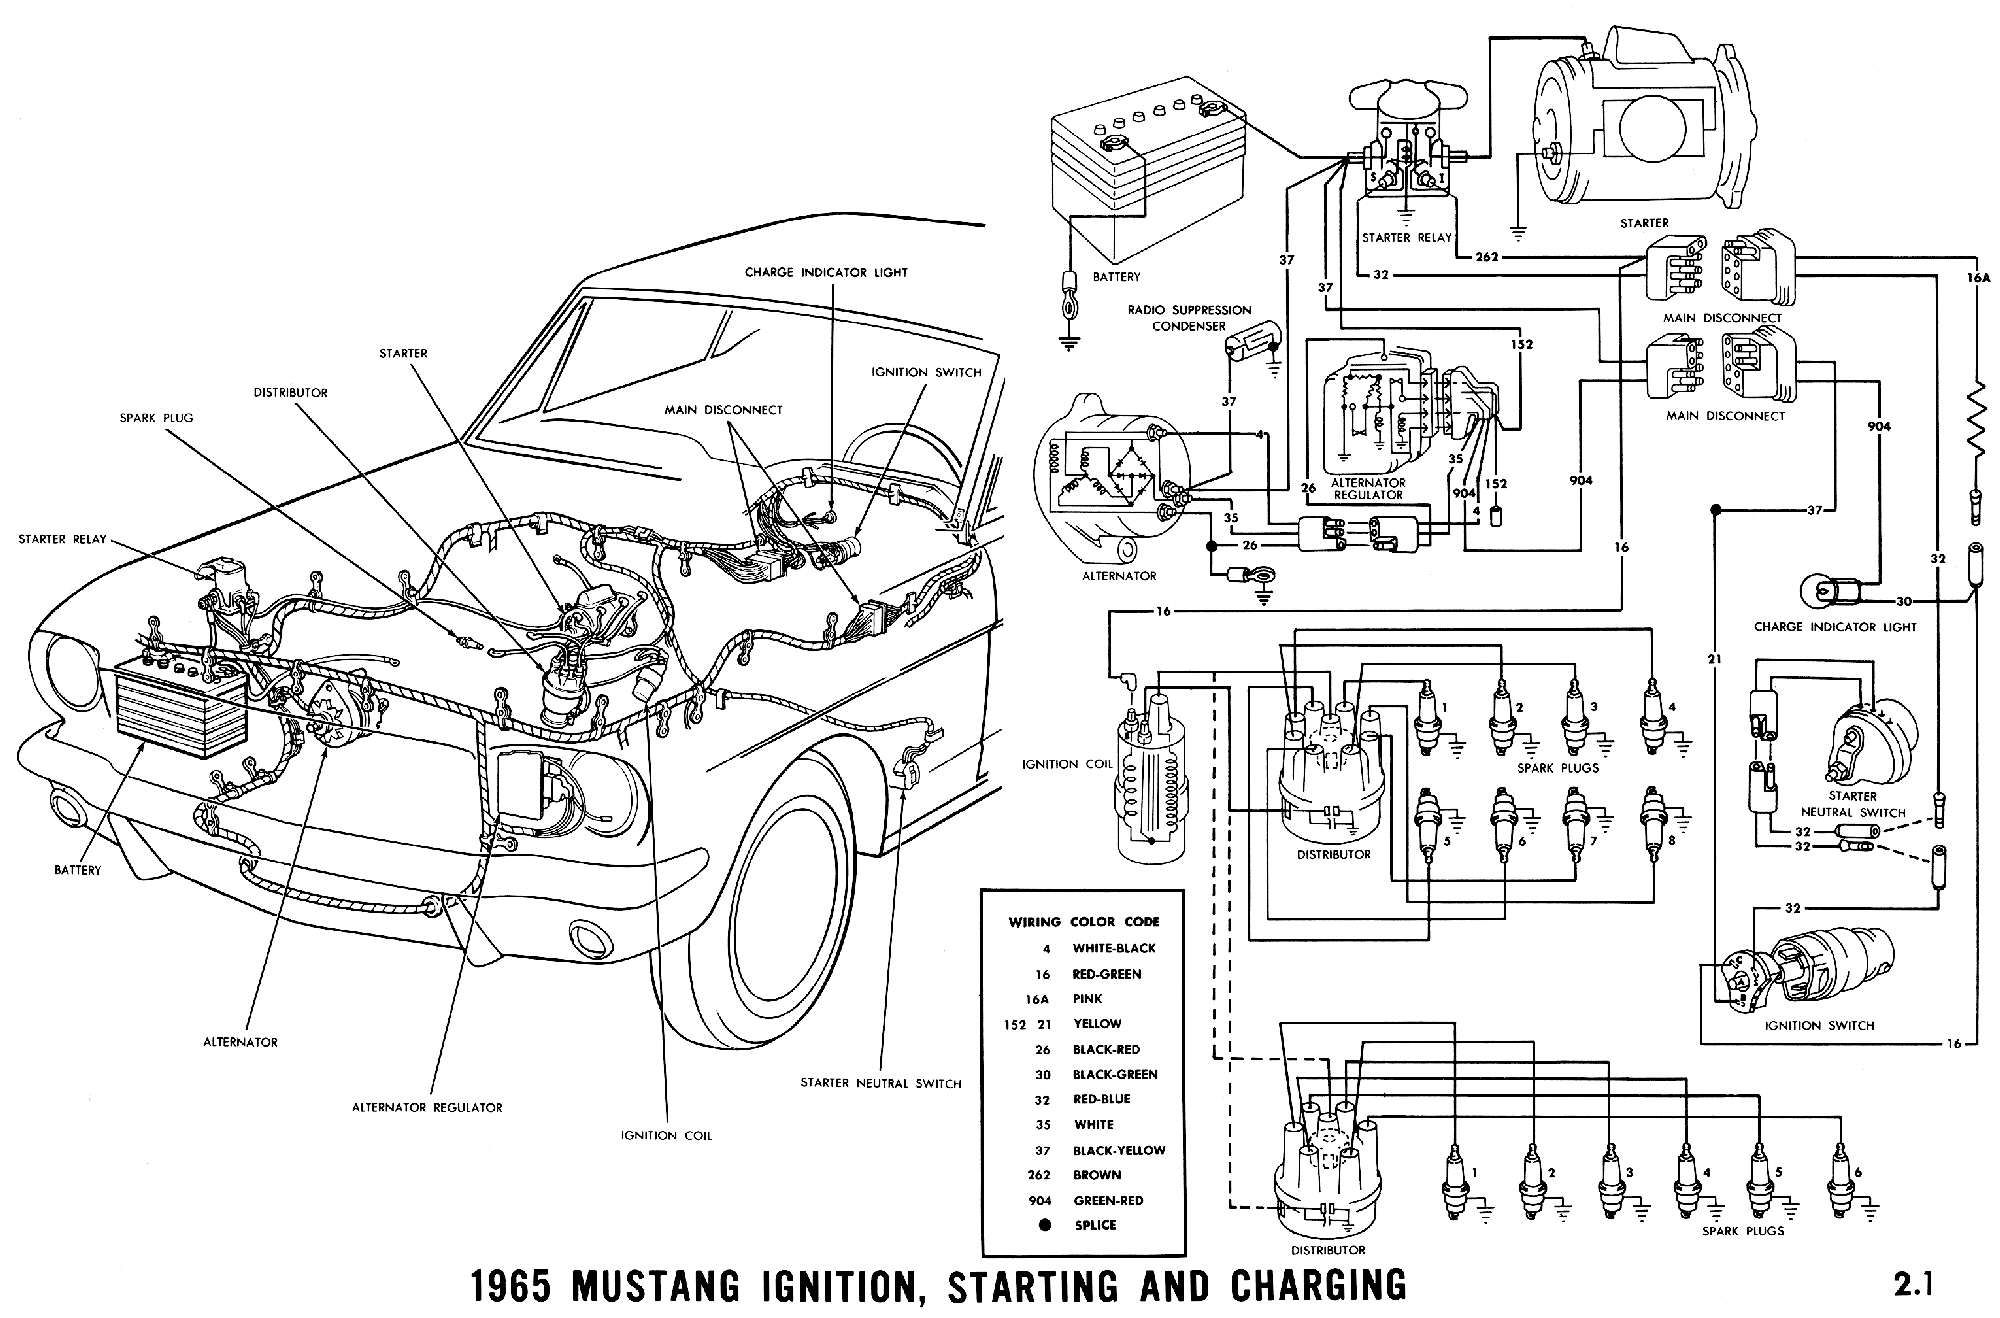 medium resolution of 66 mustang convertible wiring harness wiring diagram expert 66 mustang engine wiring wiring diagram expert 66